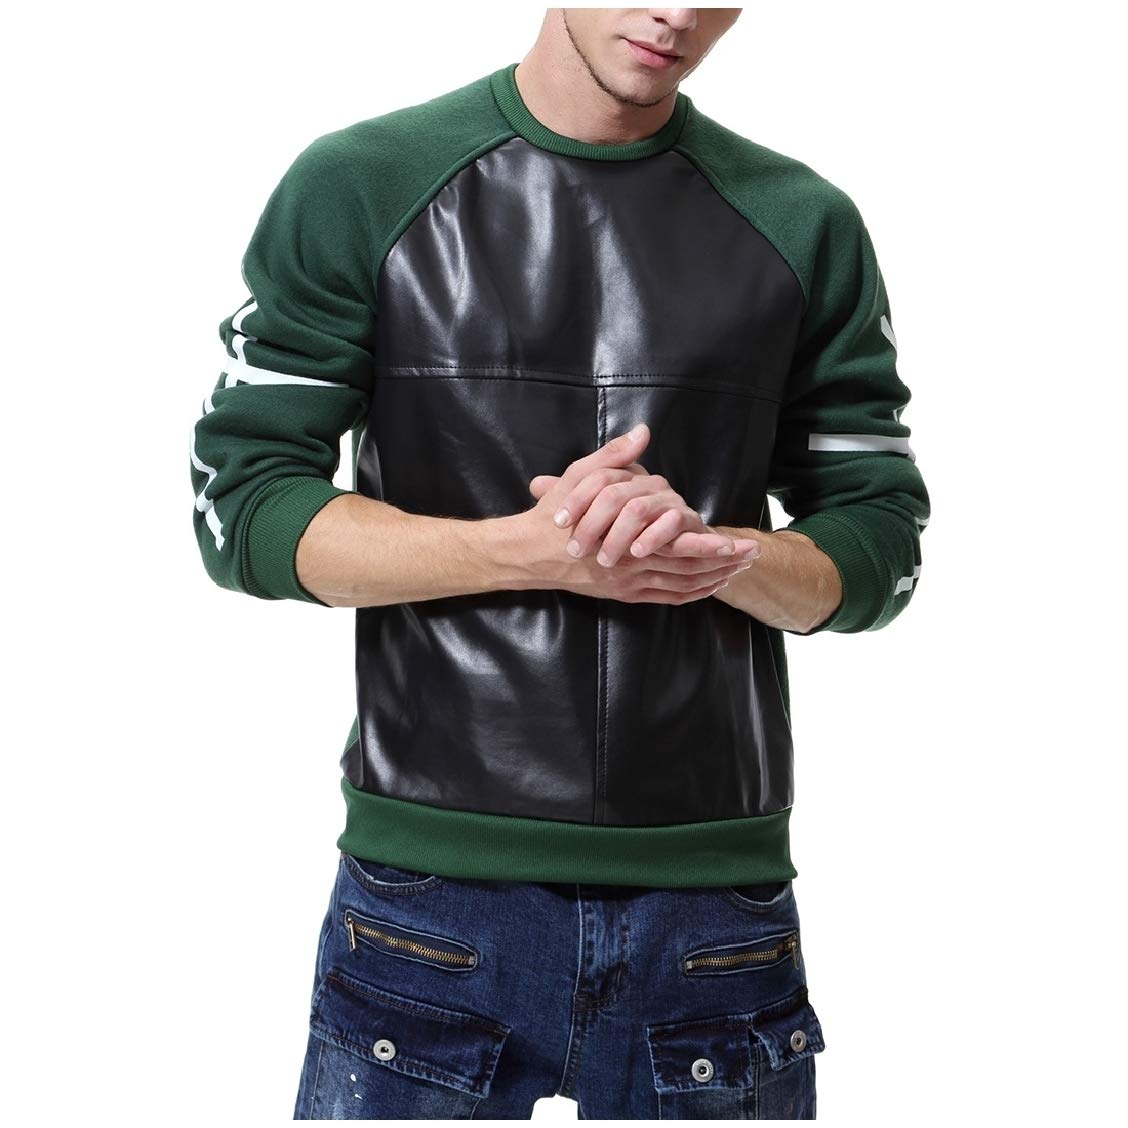 Fieer Mens Casual Patchwork Faux Leather PU Fashion O-Neck Pullover Sweatshirt